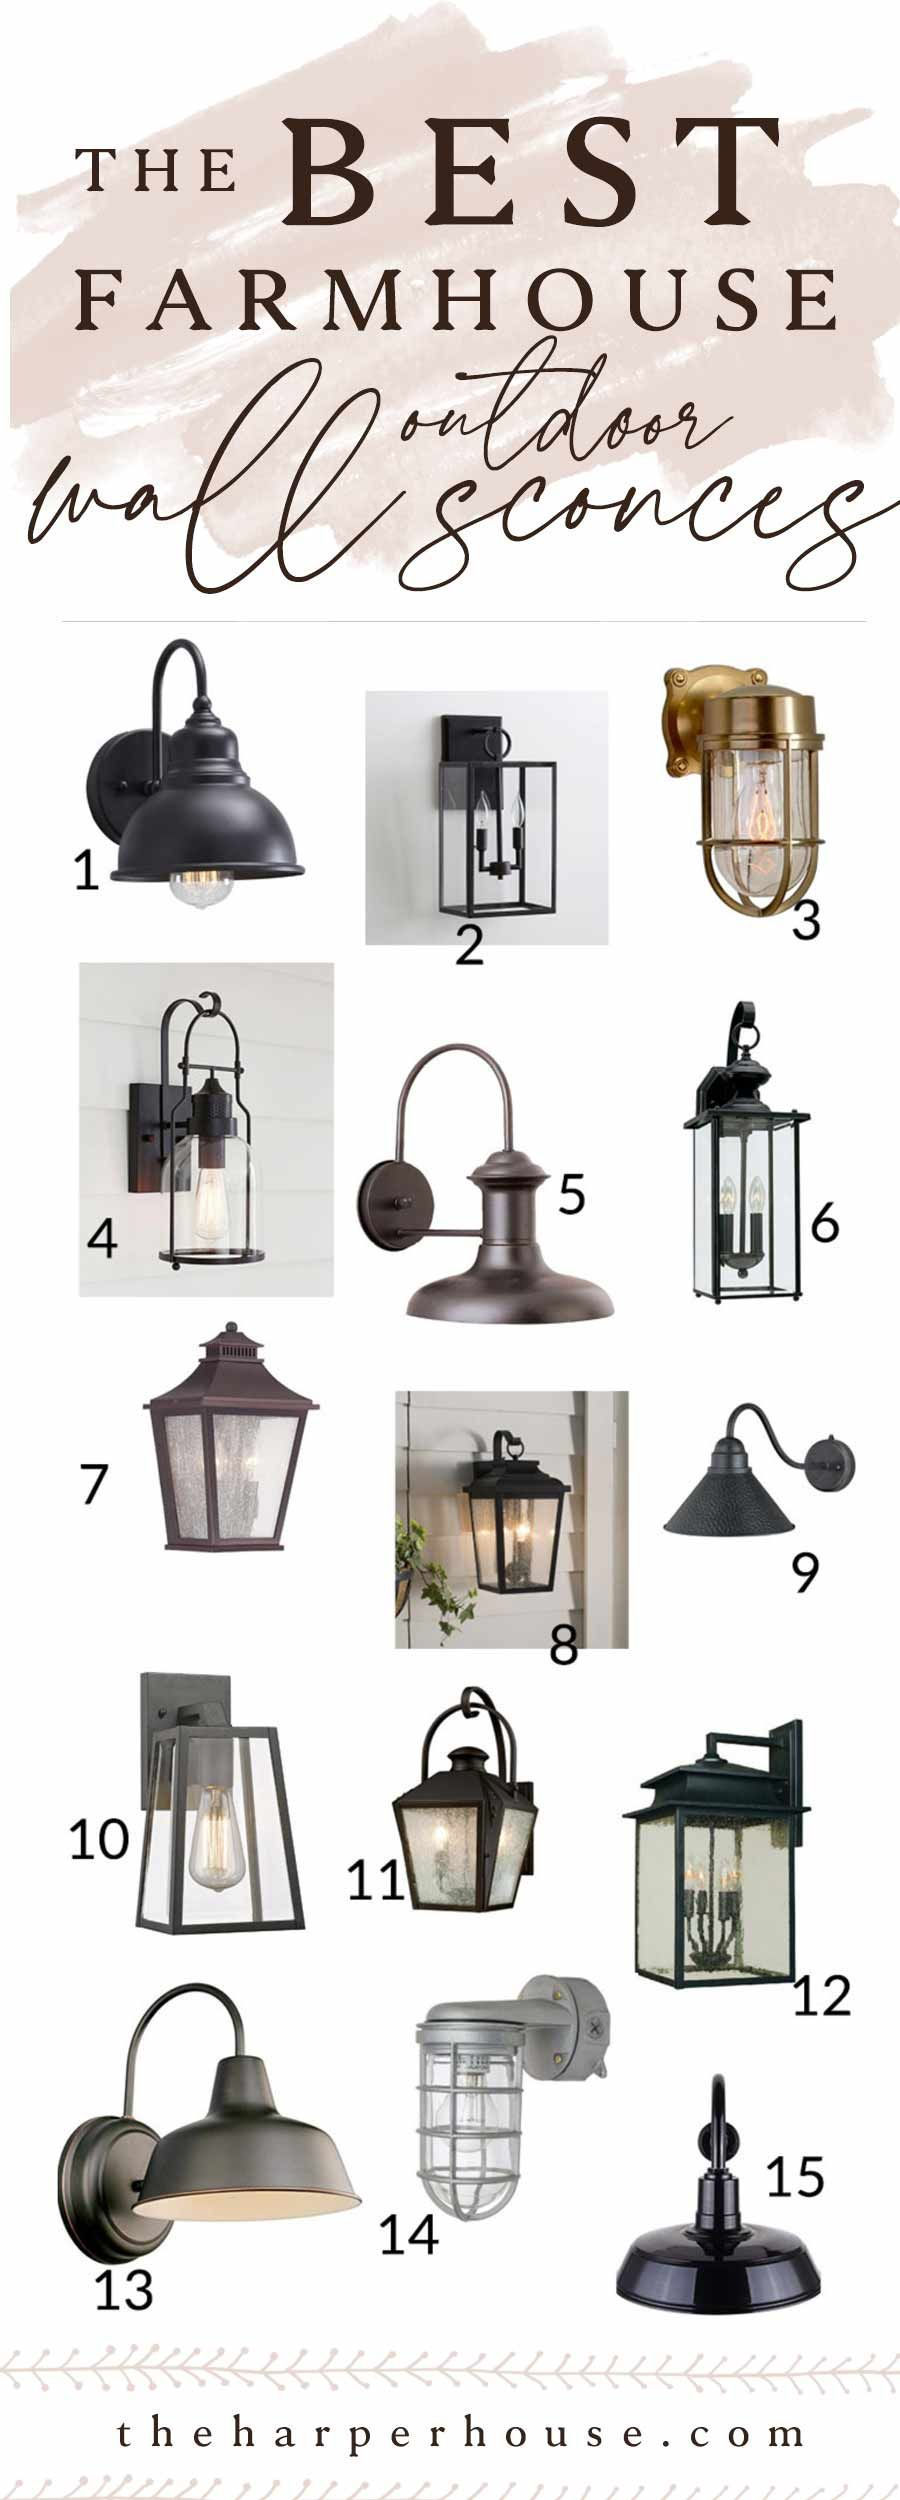 Outdoor Wall Lights Fixer Upper Style The Harper House Farmhouse Outdoor Lighting Fixer Upper Lighting Fixer Upper Light Fixtures Modern farmhouse outdoor lighting ideas